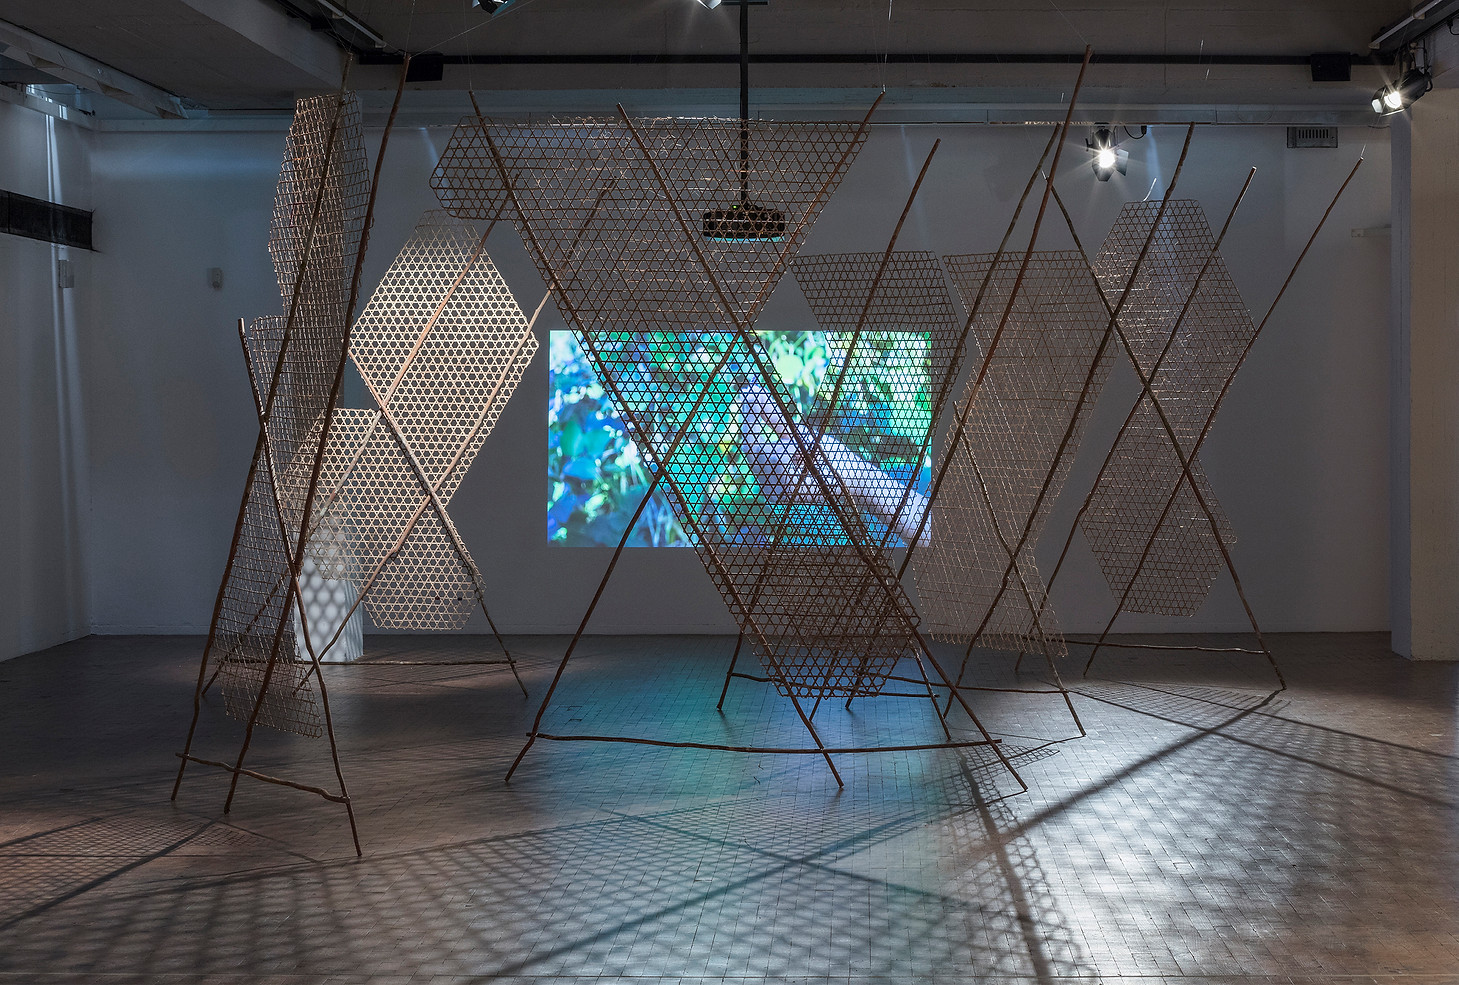 toli toli, installation with video projection, X Berlin Biennale, We don't need another hero, Berlin, Germany, 2018. Projet realized thanks to the support of the Horizn Biennale prize. ©Tim Ohler